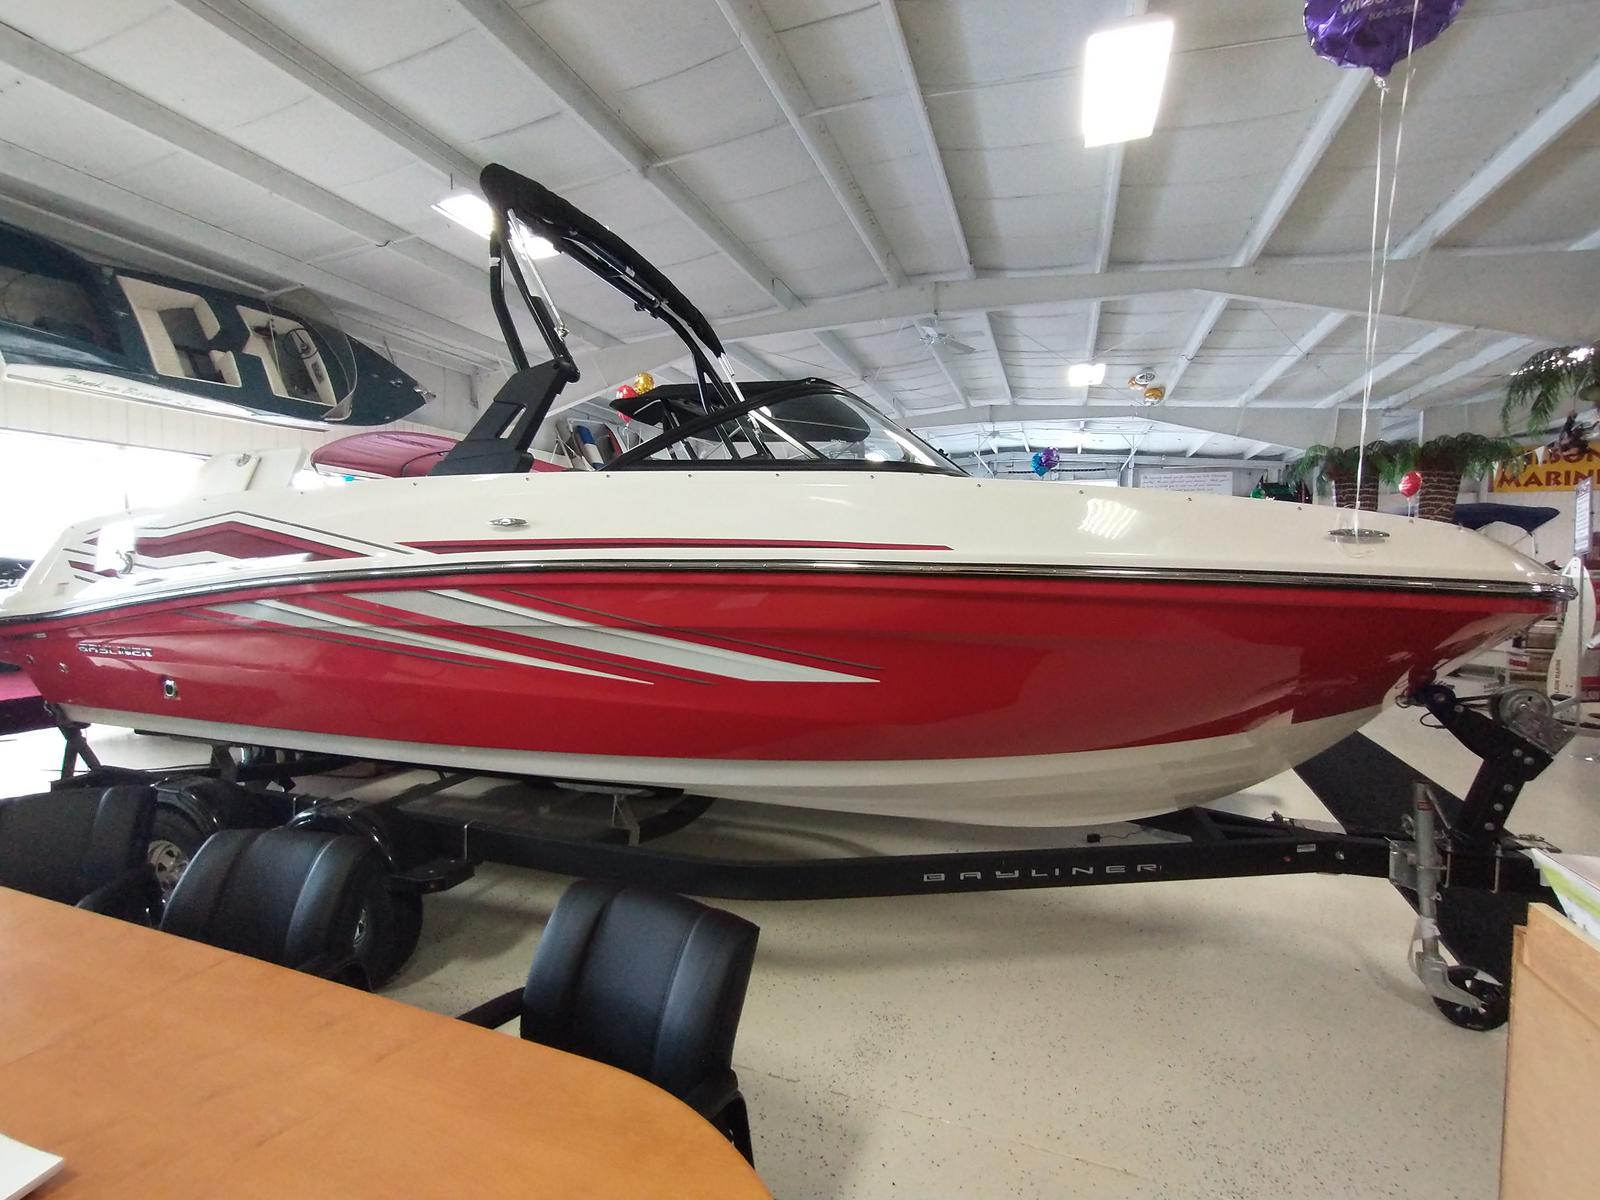 2021 Bayliner boat for sale, model of the boat is VR6 Bowrider & Image # 1 of 10